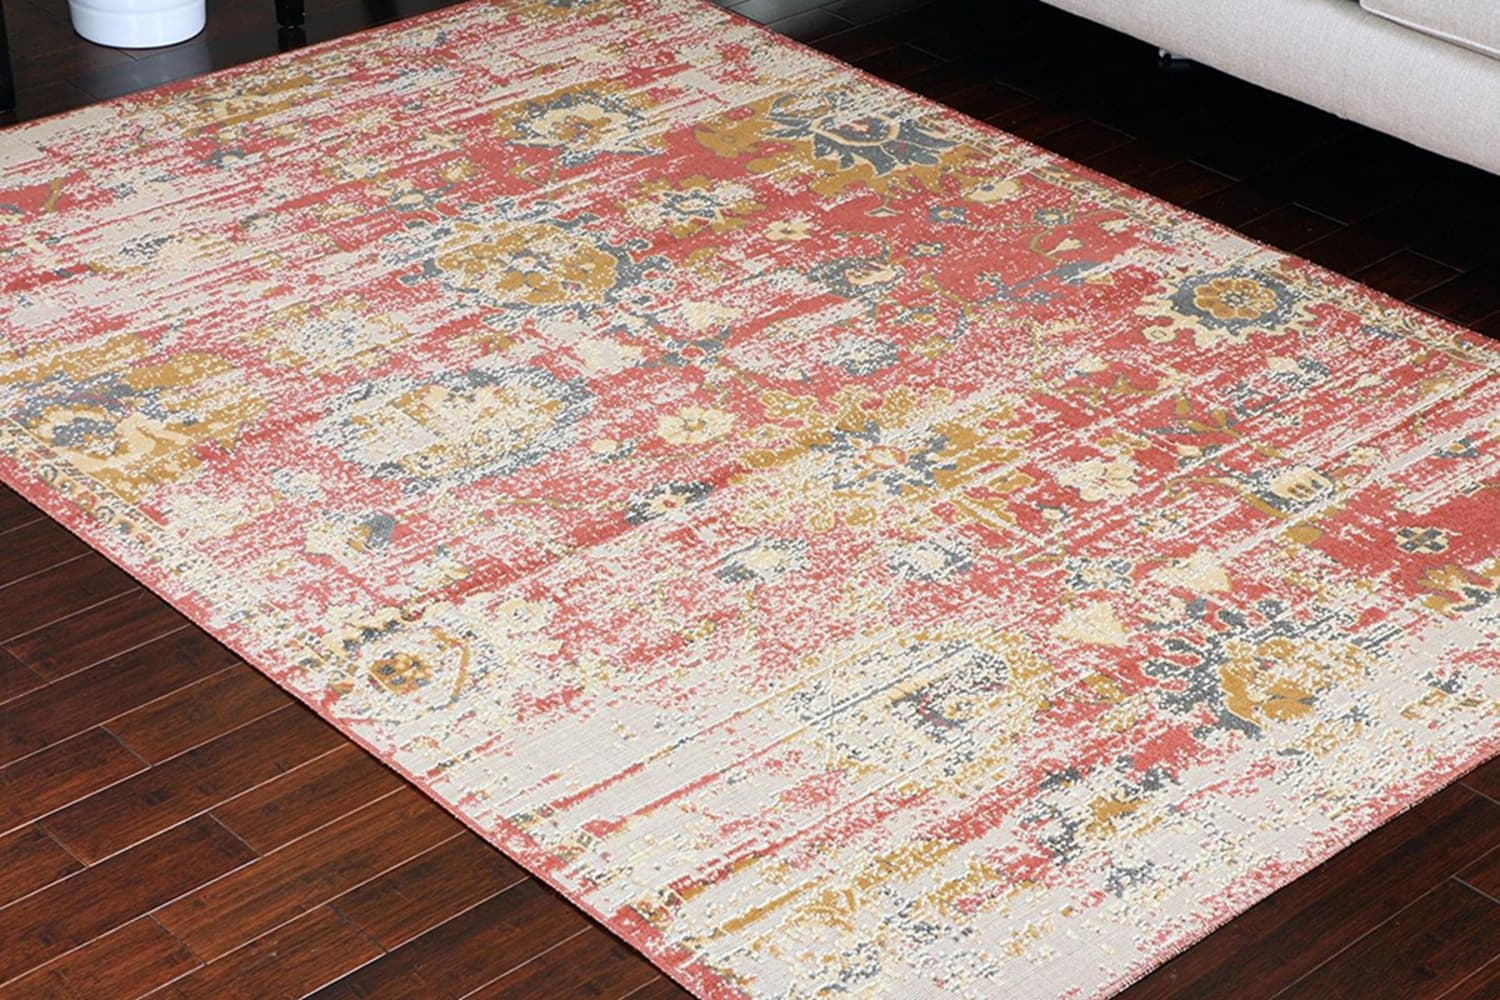 5 Awesome (& Big!) Rugs You Can Get on Amazon Under $100